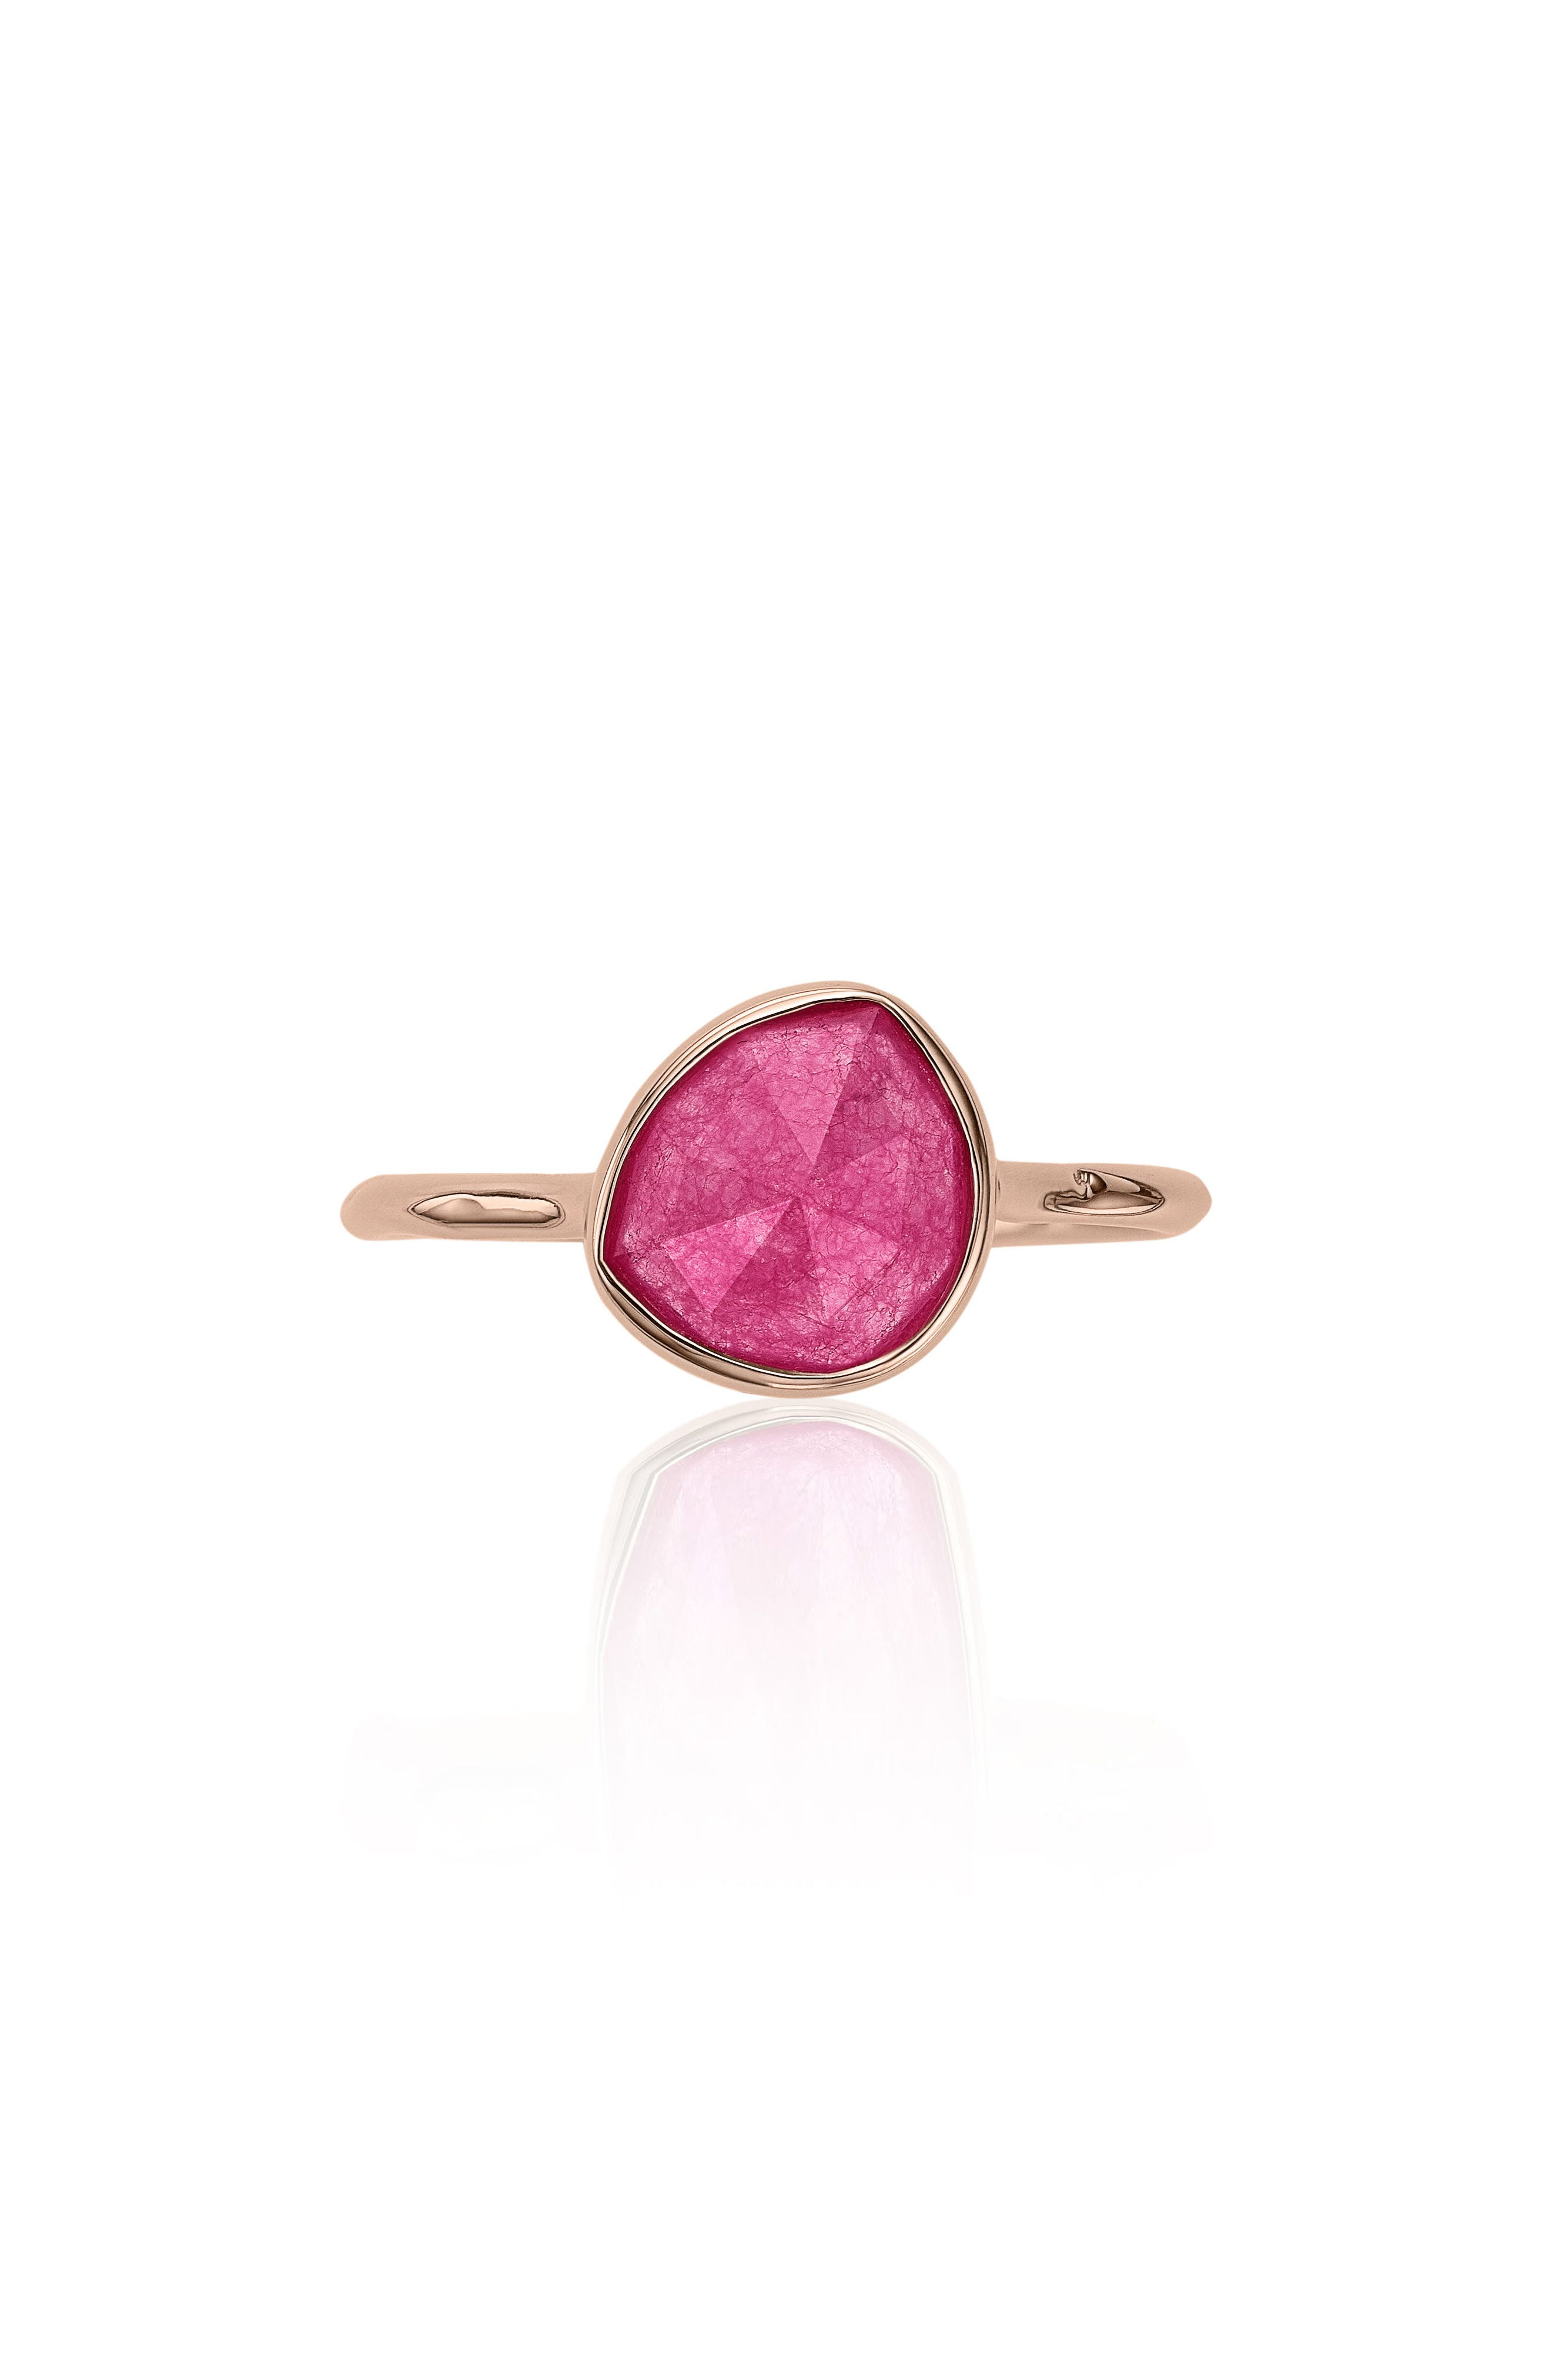 Siren Semiprecious Stone Stacking Ring,                         Main,                         color, Pink Quartz/ Rose Gold